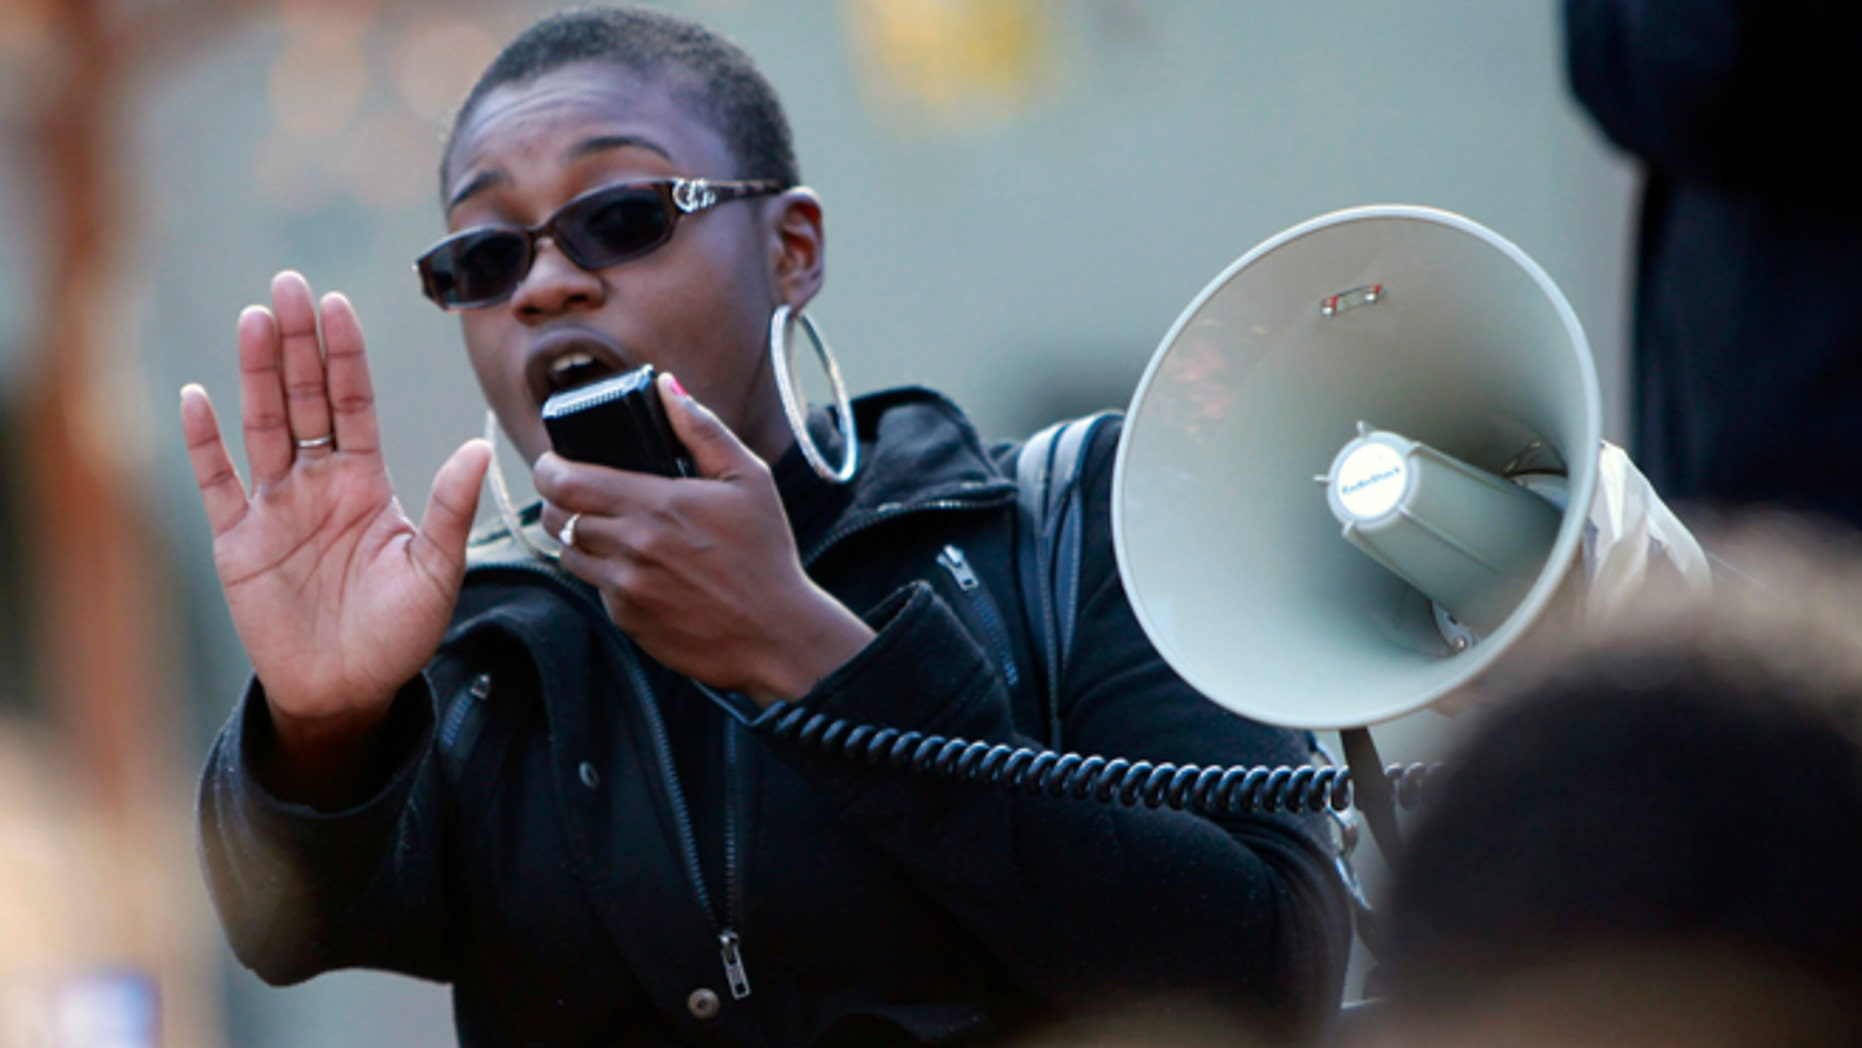 Nov. 21, 2013: Champagne Ellison, a senior at San Jose State University, speaks at a rally protesting a reported racial hazing of an African-American freshman last month in San Jose, Calif.